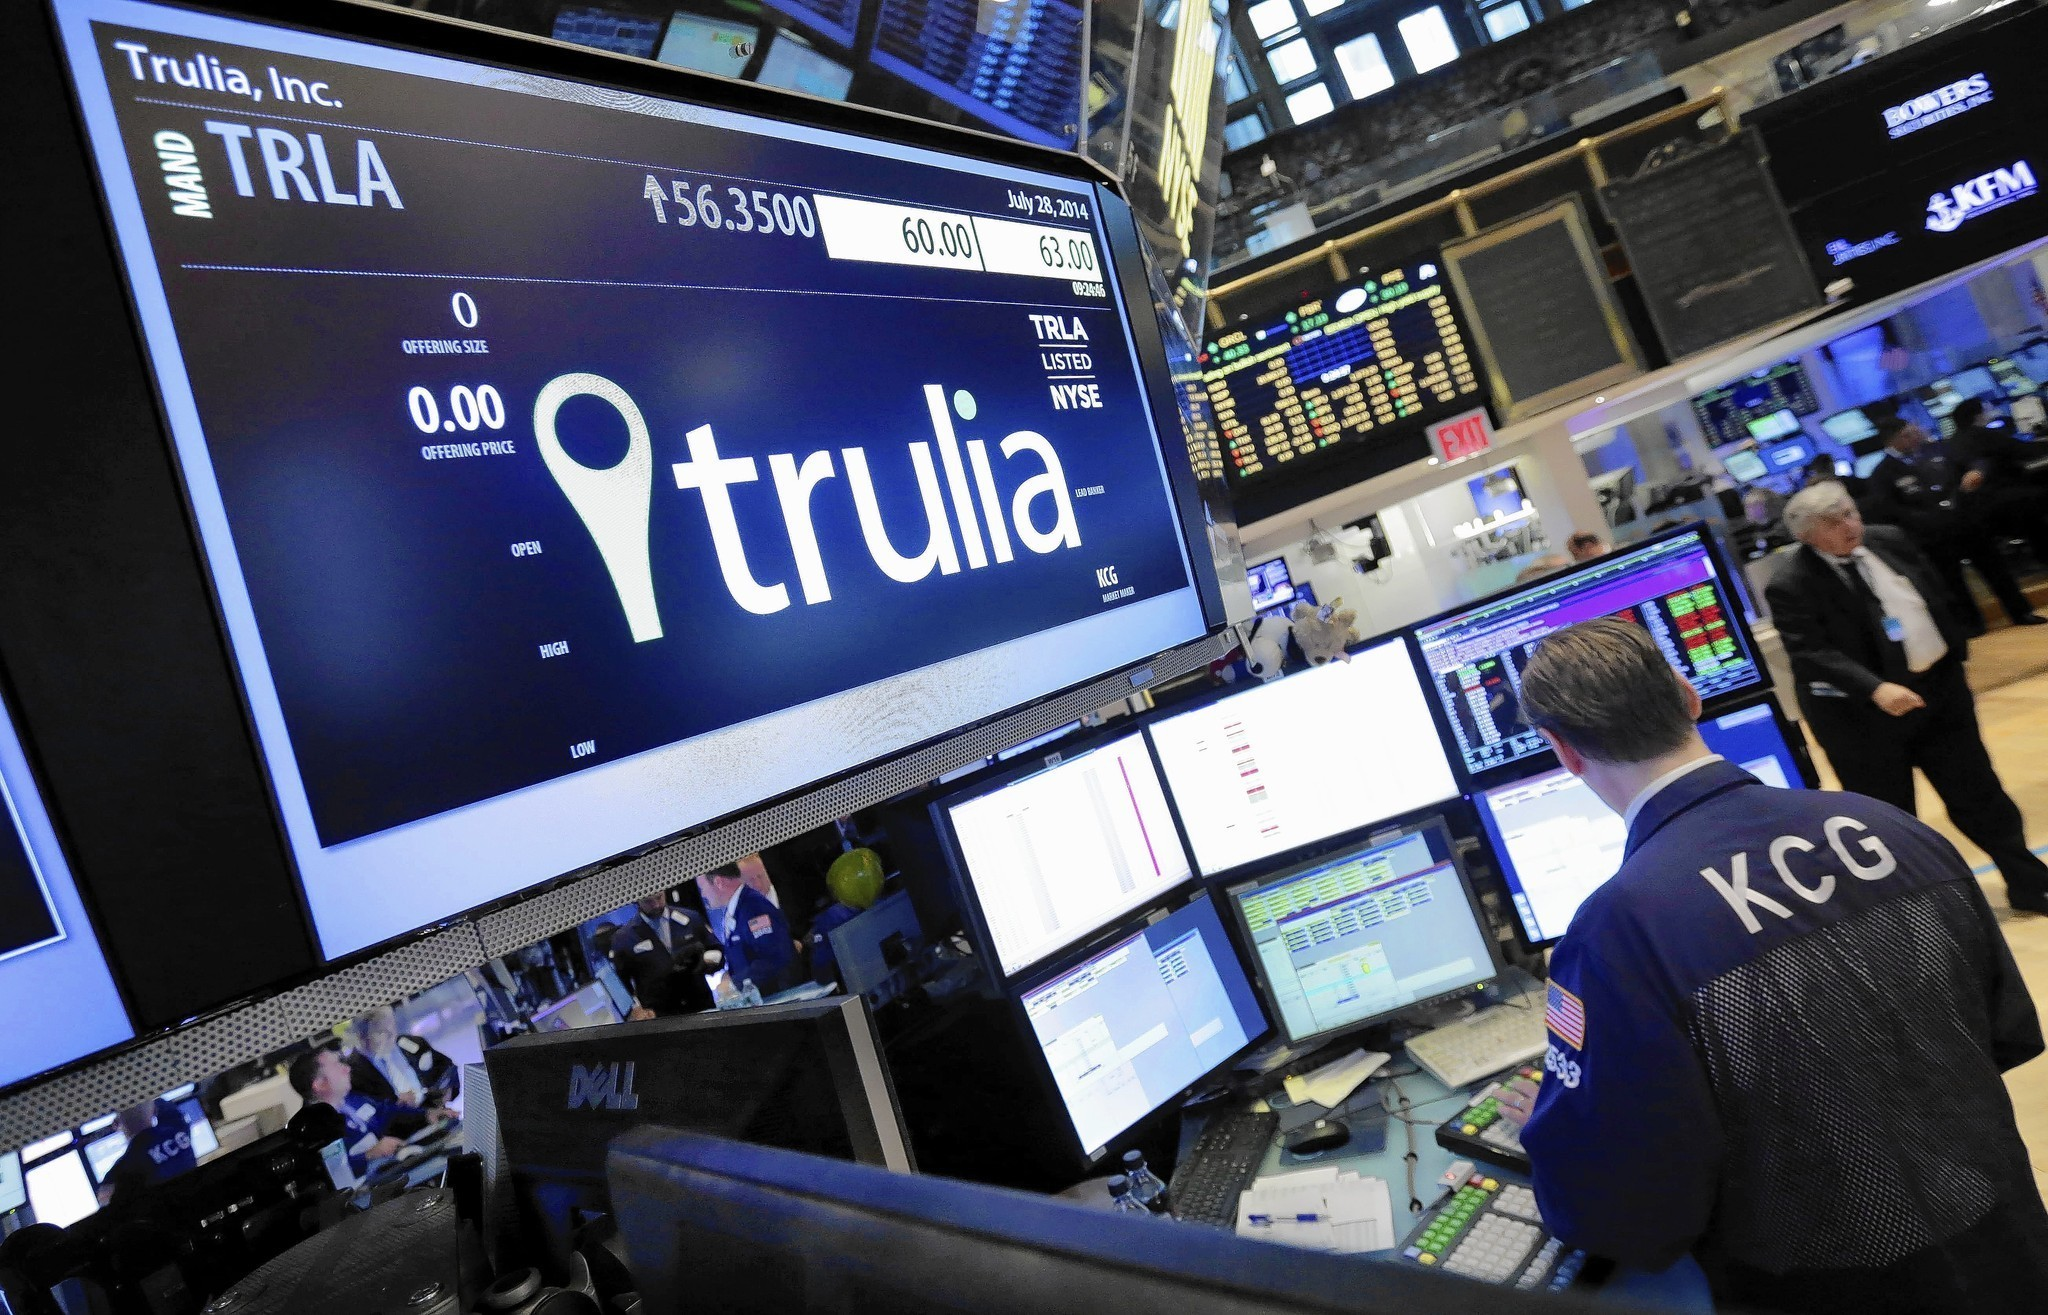 zillow deal to trulia creates real estate digital ad